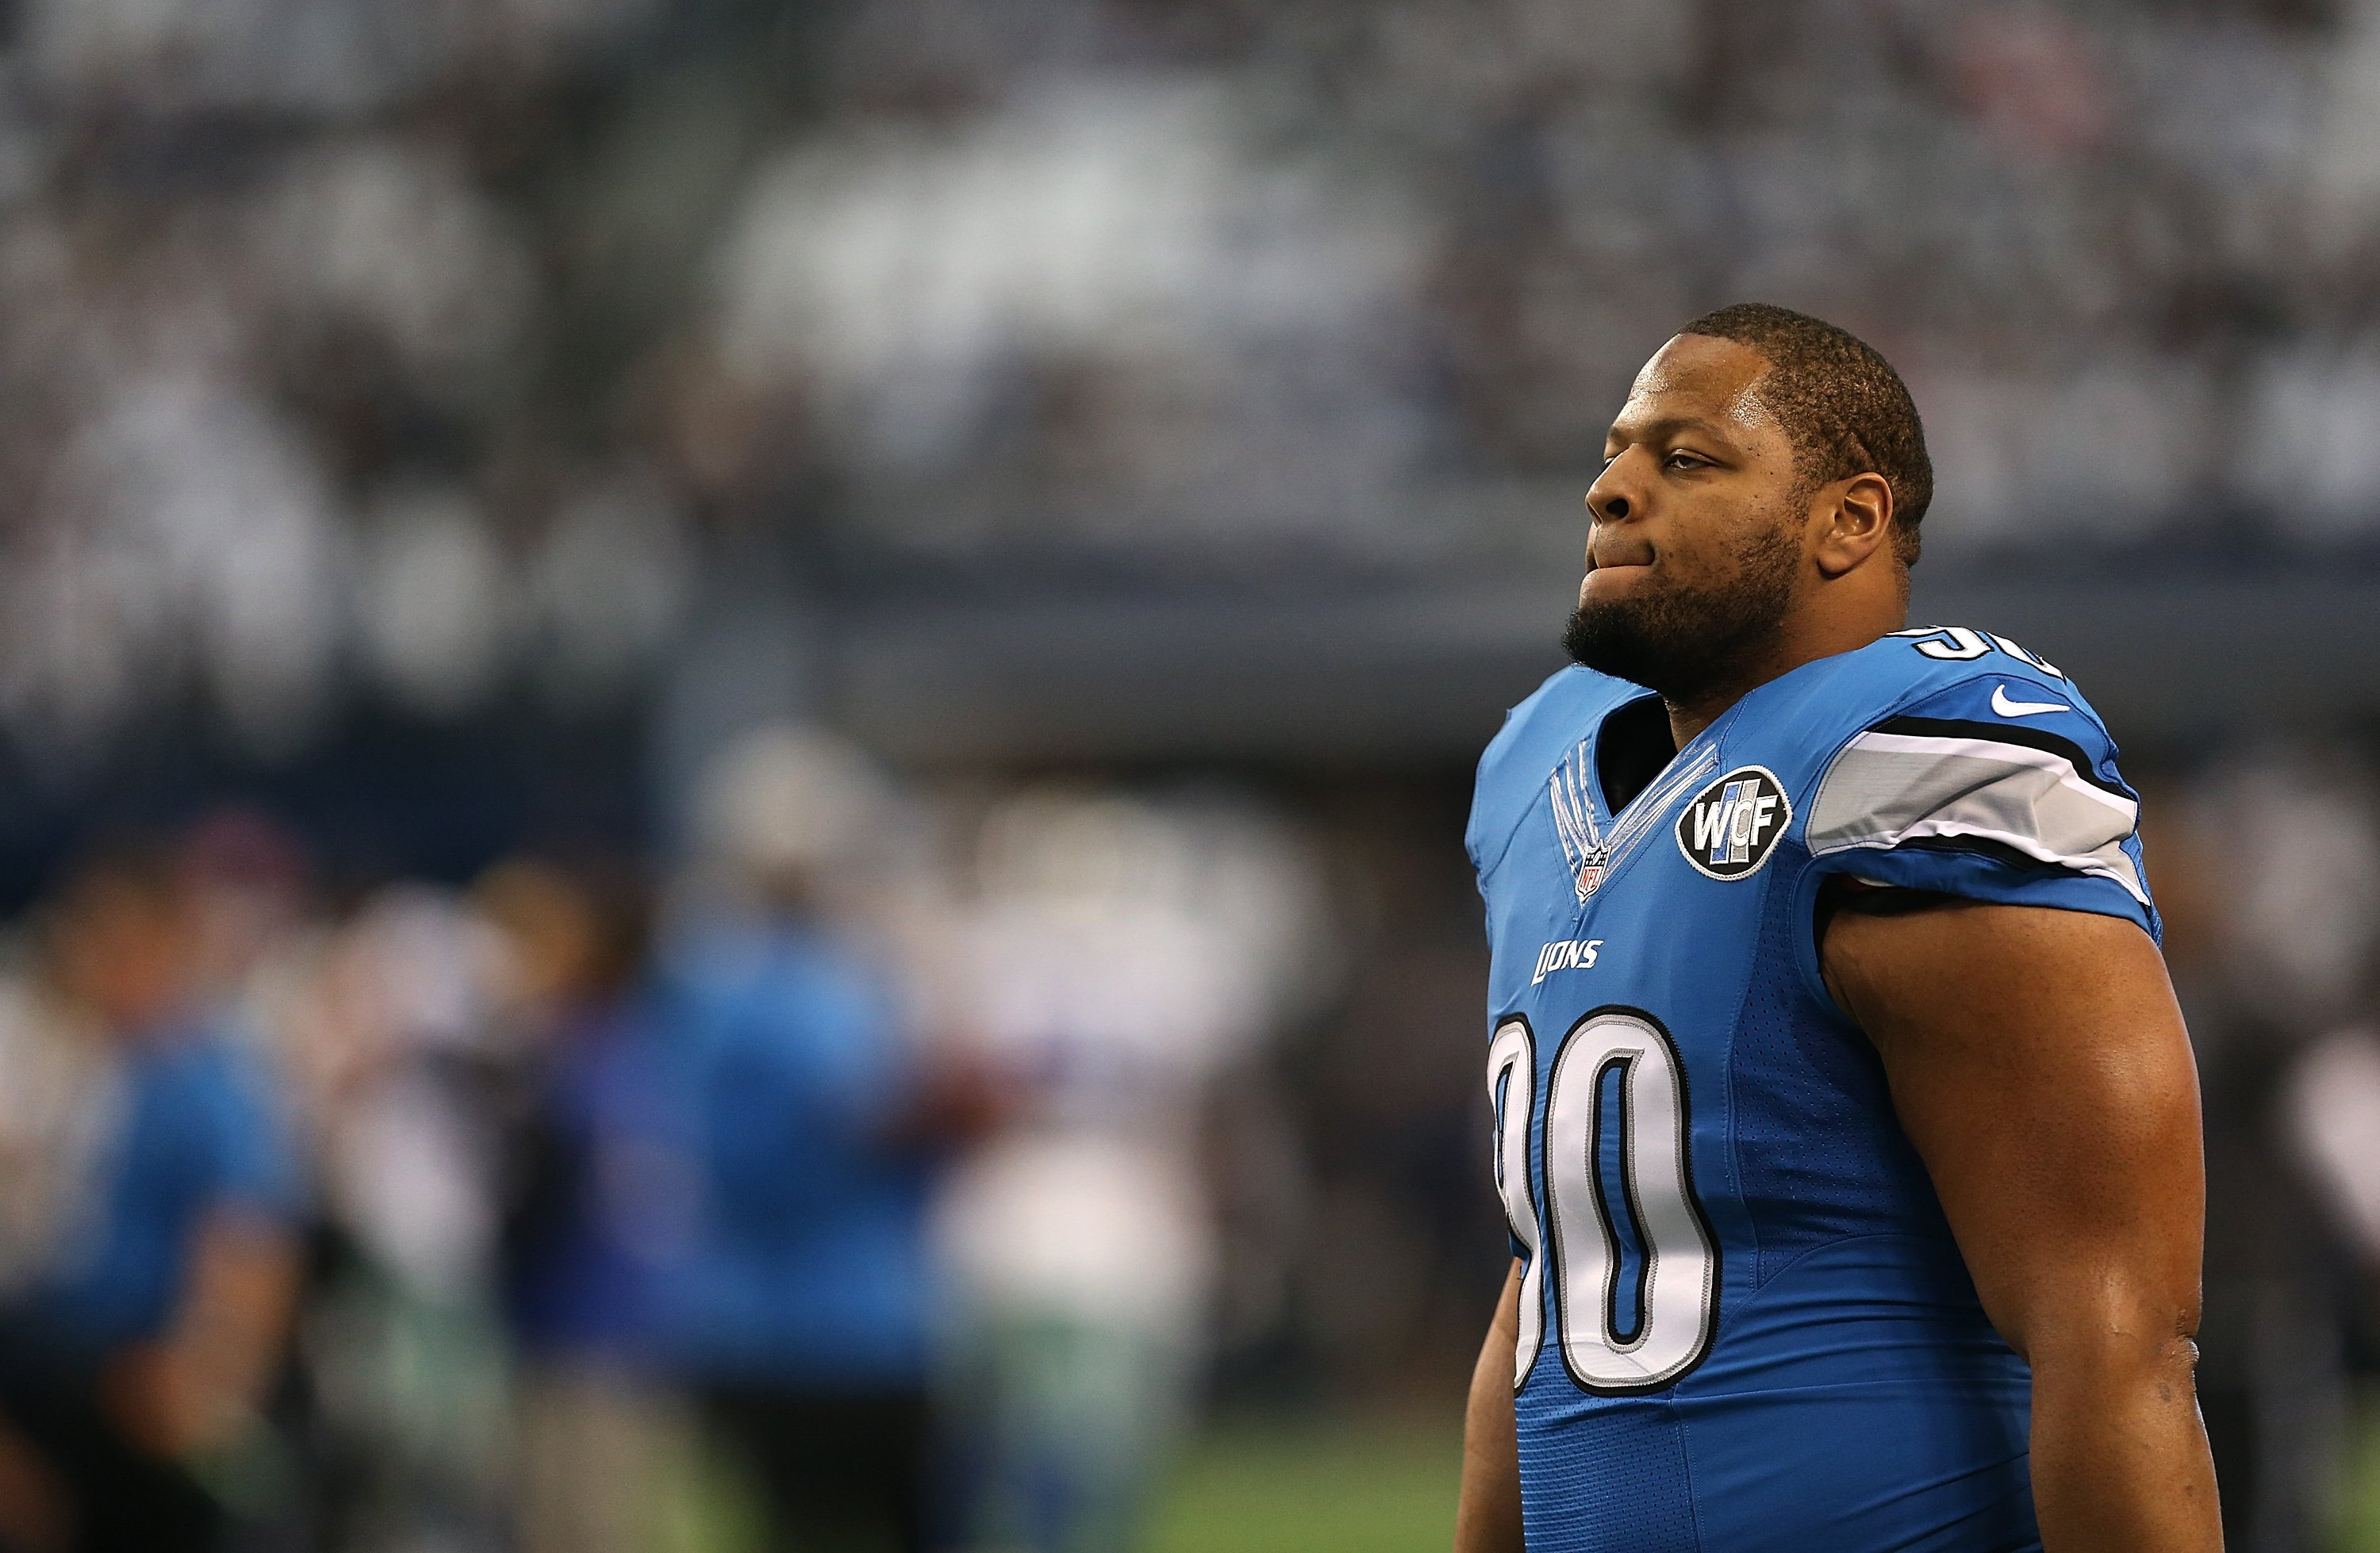 Ndamukong Suh of the Detroit Lions looks on before a NFC Wild Card Playoff game against the Dallas Cowboys at AT&T Stadium on Jan. 4, 2015 in Arlington, Texas.